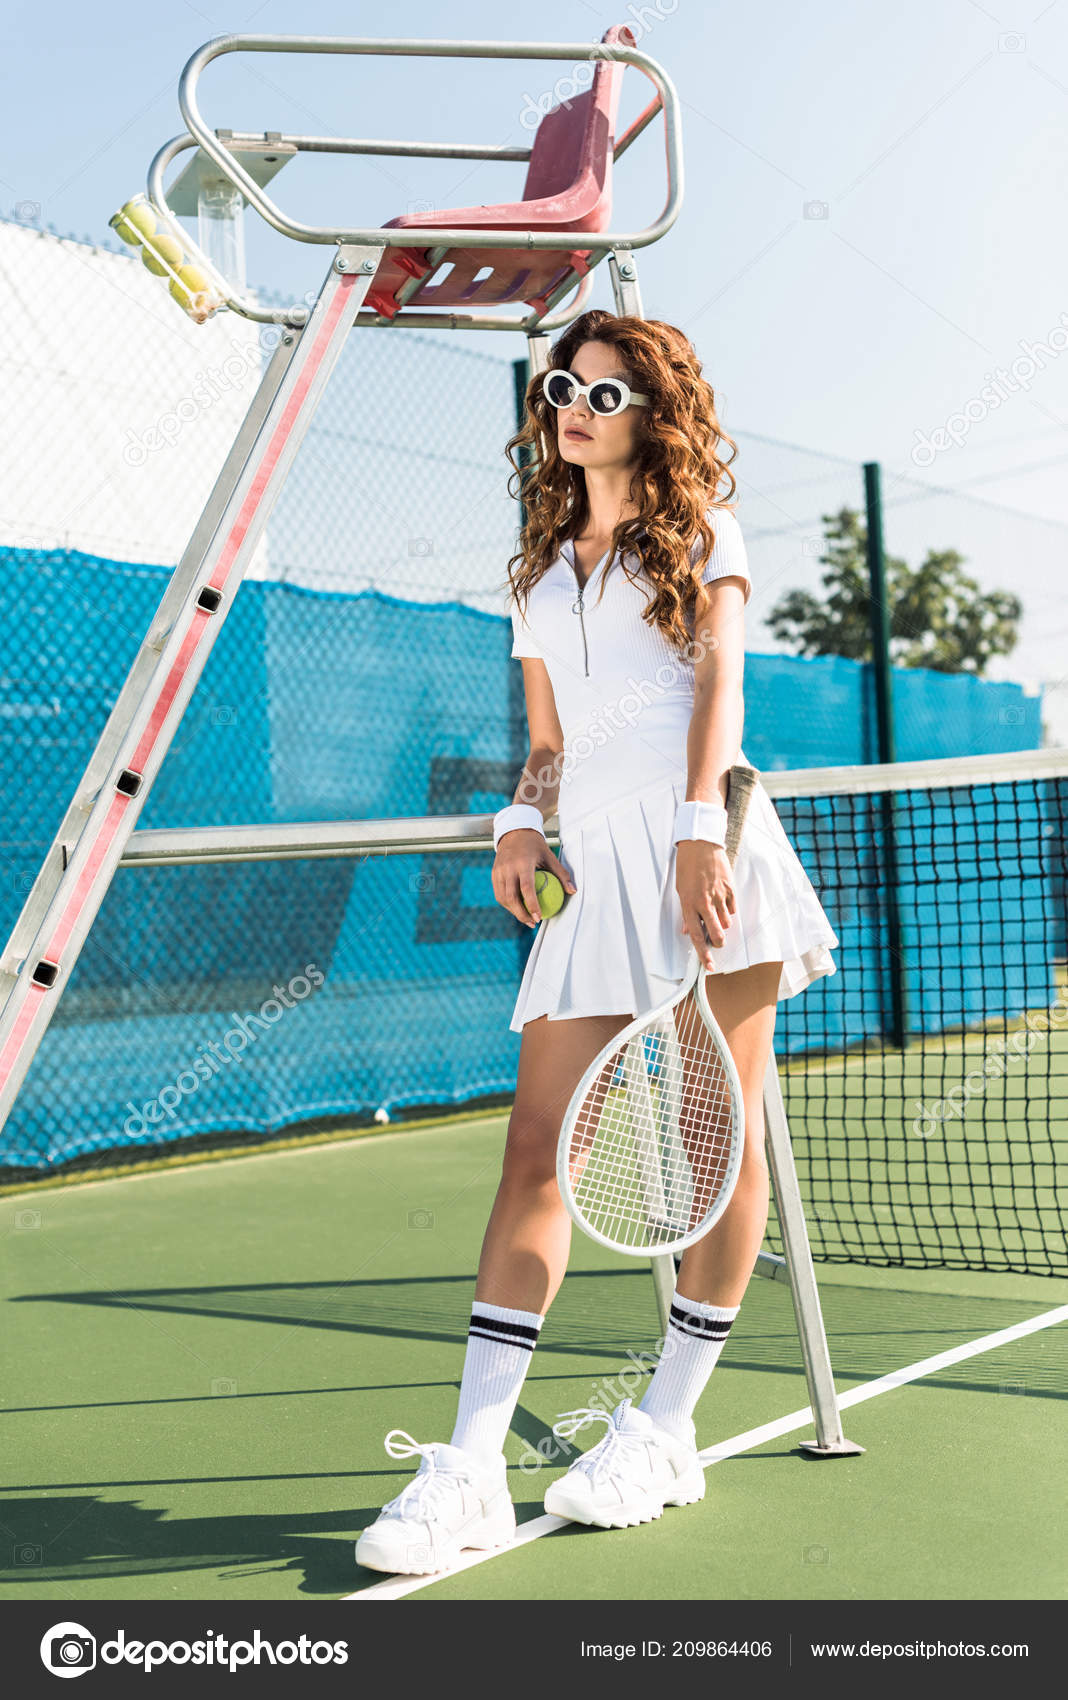 fd47fa6f7d6 Fashionable Woman White Tennis Uniform Sunglasses Racket Ball Leaning  Referee — Stock Photo